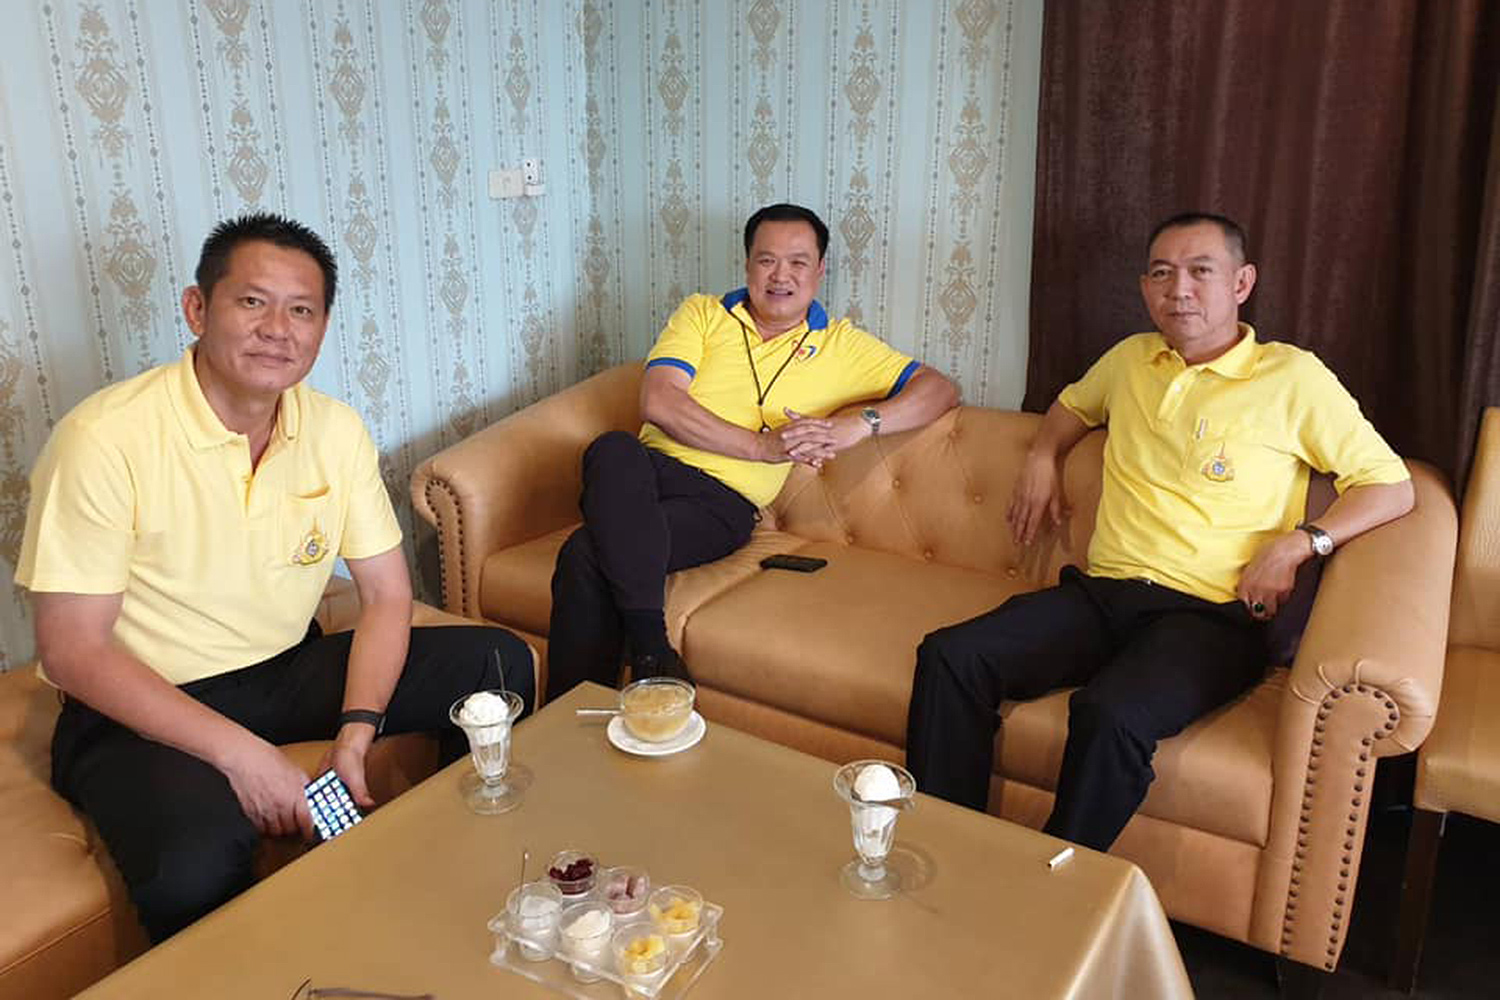 Bhumjaithai Party leader Anutin Charnvirakul is flanked by Democrat MP for Prachuap Khiri Khan Montree Panoinon (left) and Democorat secretary-general Chalermchai Sri-on during their working lunch on Tuesday. (Photo from Anutin Charnvirakul Facebook account)